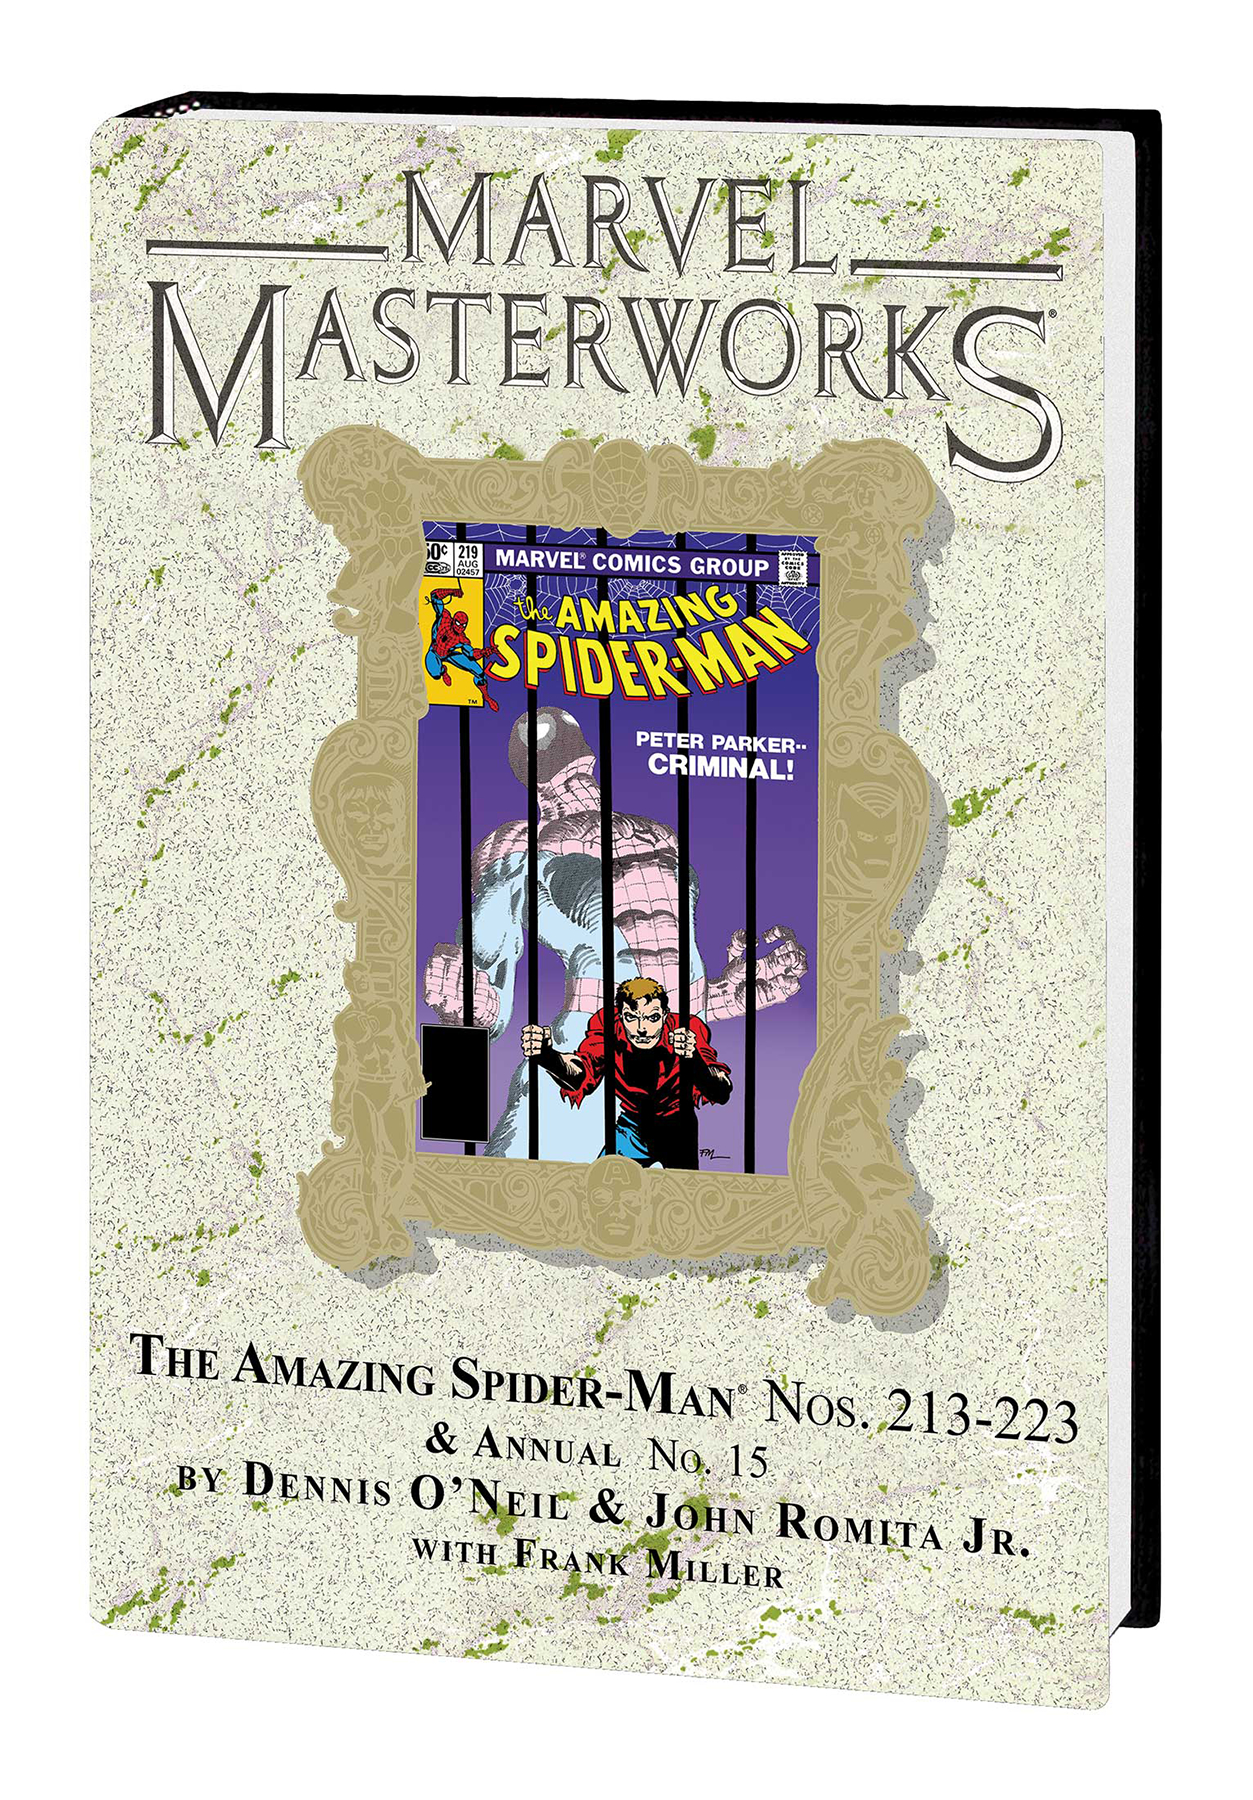 MMW AMAZING SPIDER-MAN HC VOL 21 DM VAR ED 283